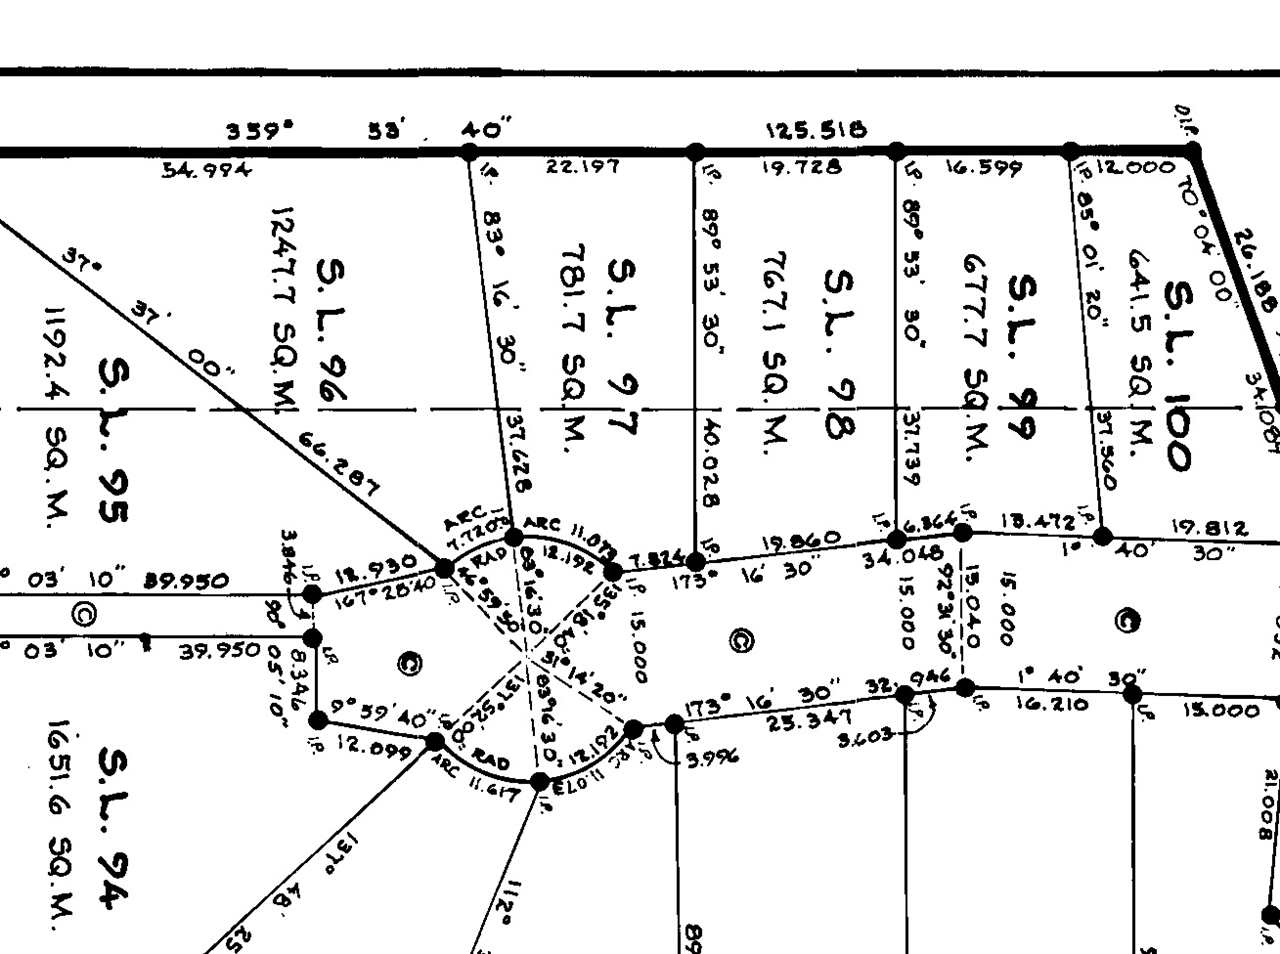 Building Lot in the Recreational/Residential Community of Sunshine Valley near Manning Park less than 2 hours from Vancouver. Water, Sewer, Power, Cable and Phone all at the lot line ready to begin construction. Lots of building options on this one from a small cabin to a large home. Easy and quick building permitting process. In gated community of Parkhill Village. Enjoy 4 seasons for all your outdoor fun. Hiking, fishing, ATV'ing, snowmobiling, X-country & downhill skiing in neighbouring Manning Park & more. Only 10 min to Hope, 2 hours to Vancouver and 30 min to Manning Park. No borders, No ferries. Get back to nature, a weekend at a time!